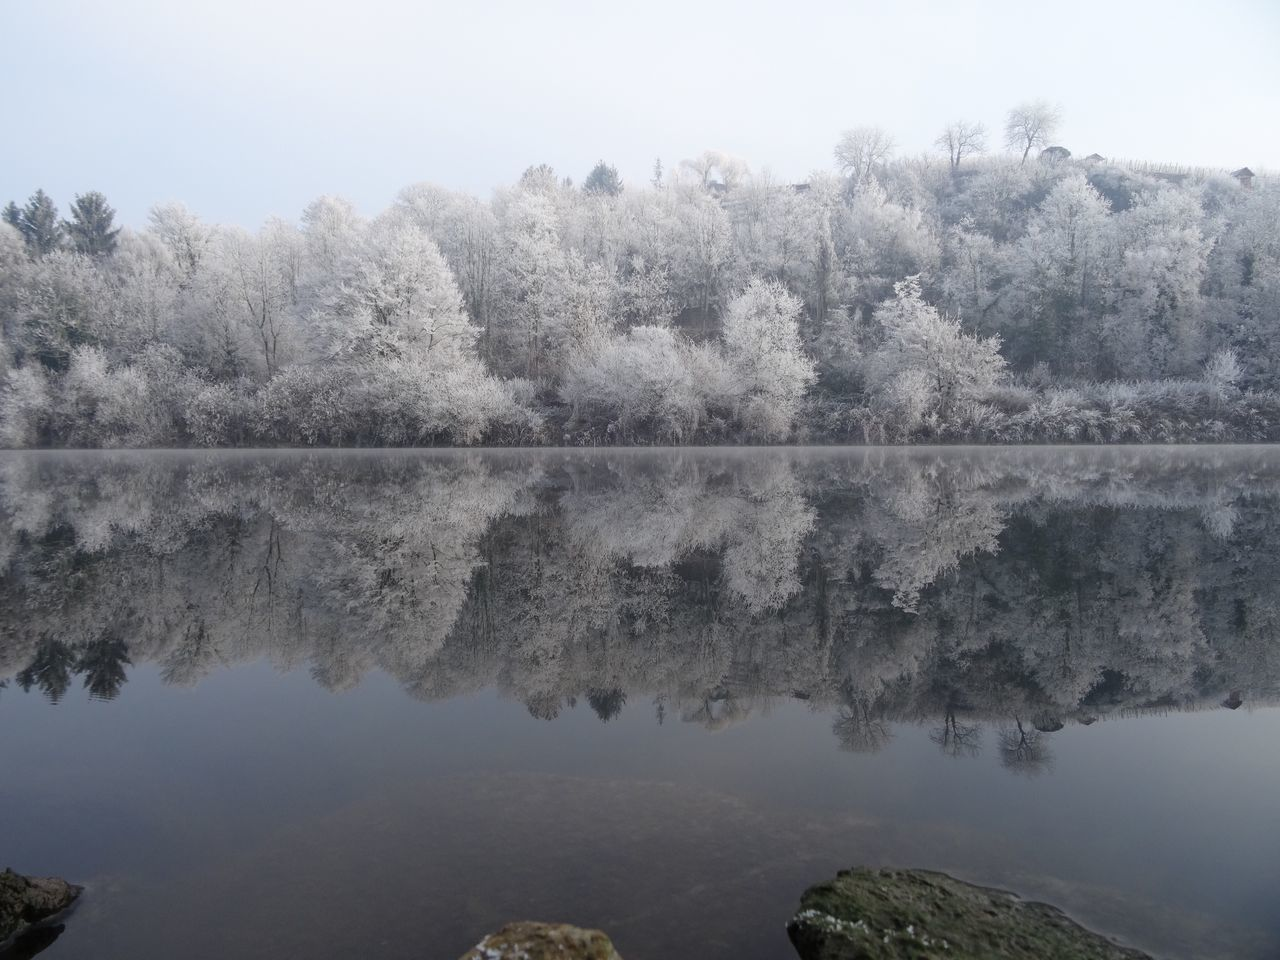 Tree Nature Water Reflection Beauty In Nature Tranquility Scenics Tranquil Scene Fog No People Lake Outdoors Winter Wonderland Neckar River New Year Winter White Frost Landscape Clear Sky Tranquility Idyllic Beauty In Nature Germany Frost Morning